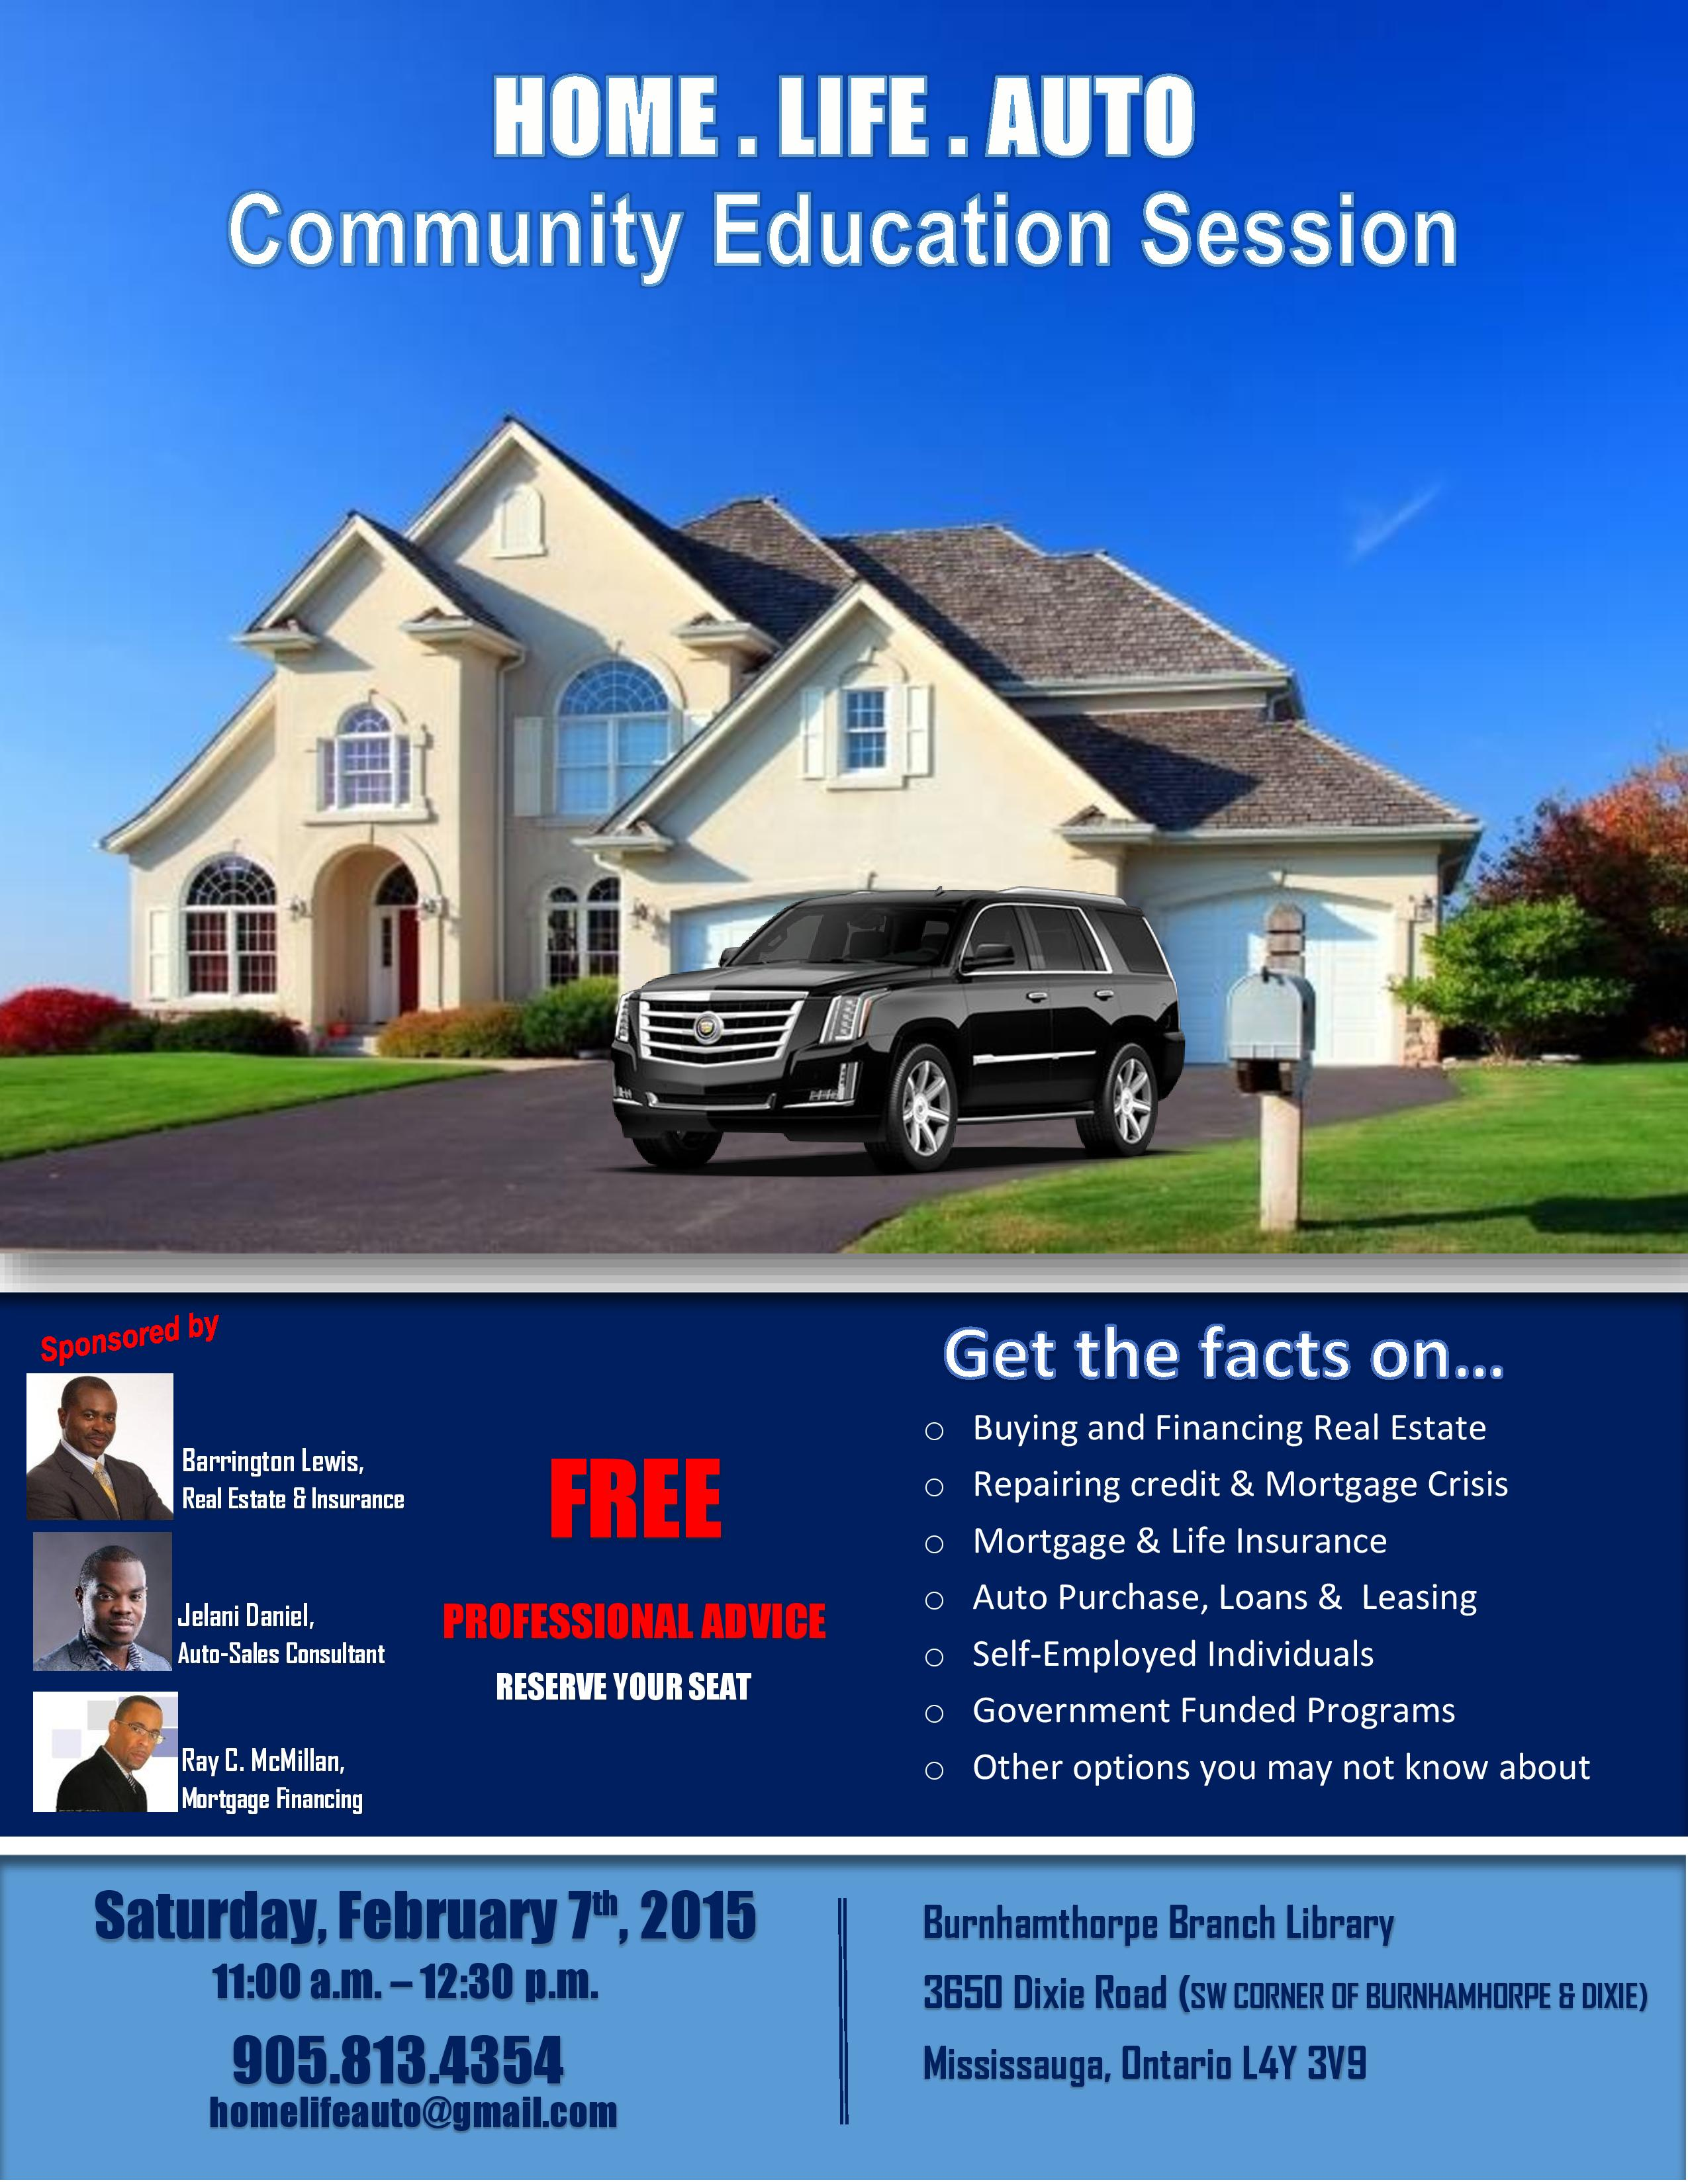 Facts about buying a home - Seating Is Limited R S V P By Email To Homelifeauto Gmail Com Or By Phone To 905 813 4354